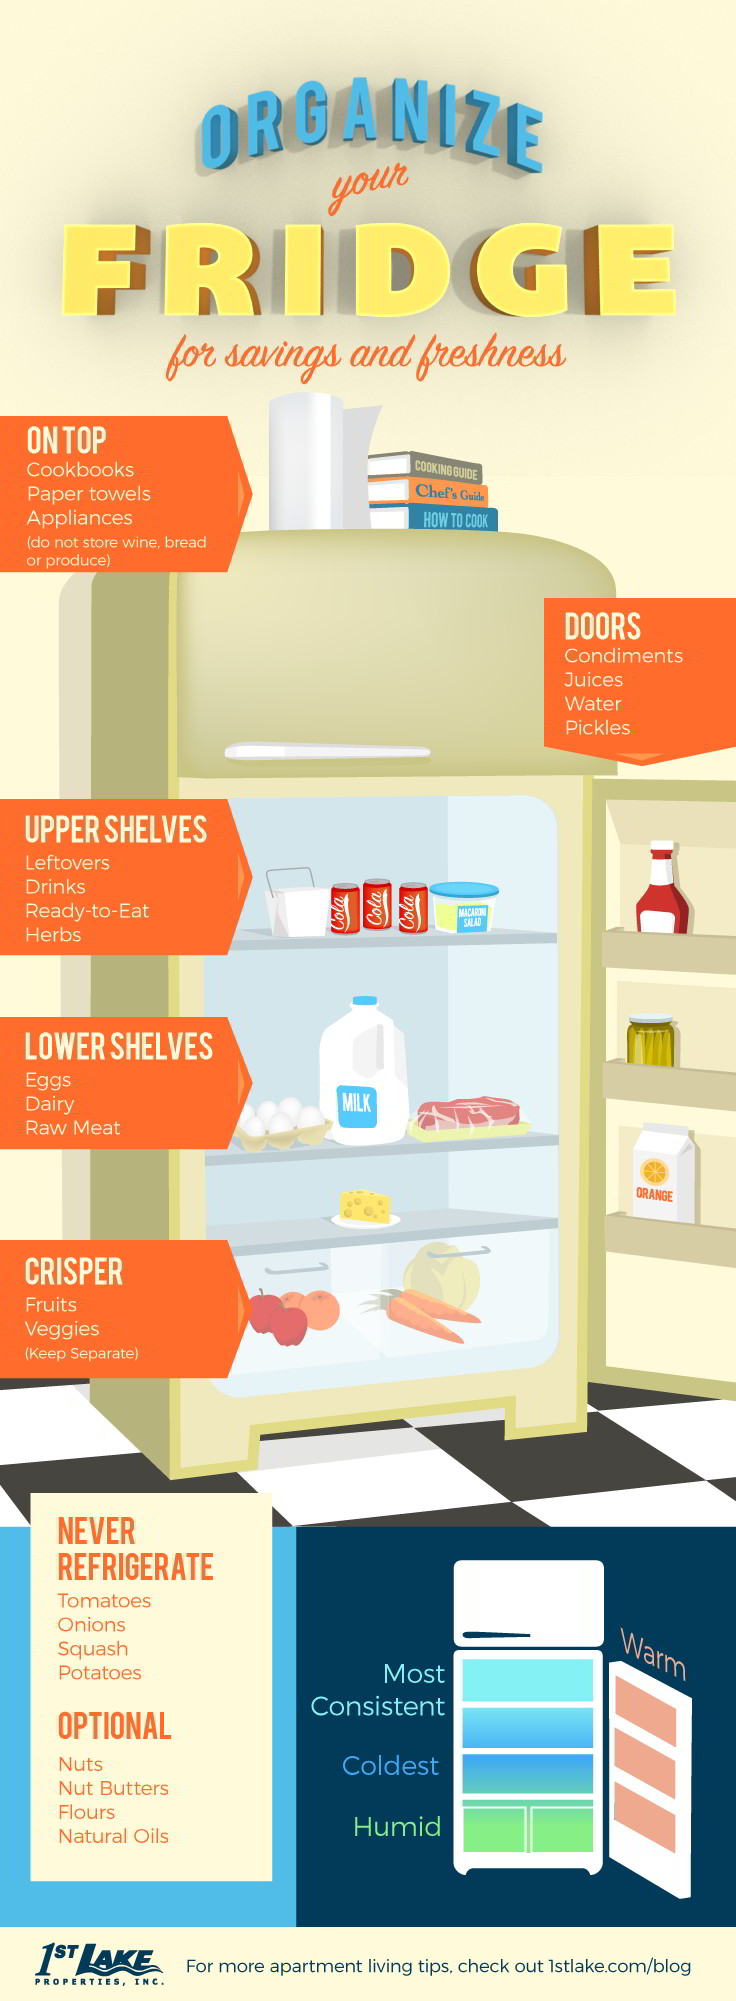 There are ways to create more space to make room for everything that needs to be refrigerated. Start with these fridge organization hacks, and read on for the best places to store everything inside your refrigerator.